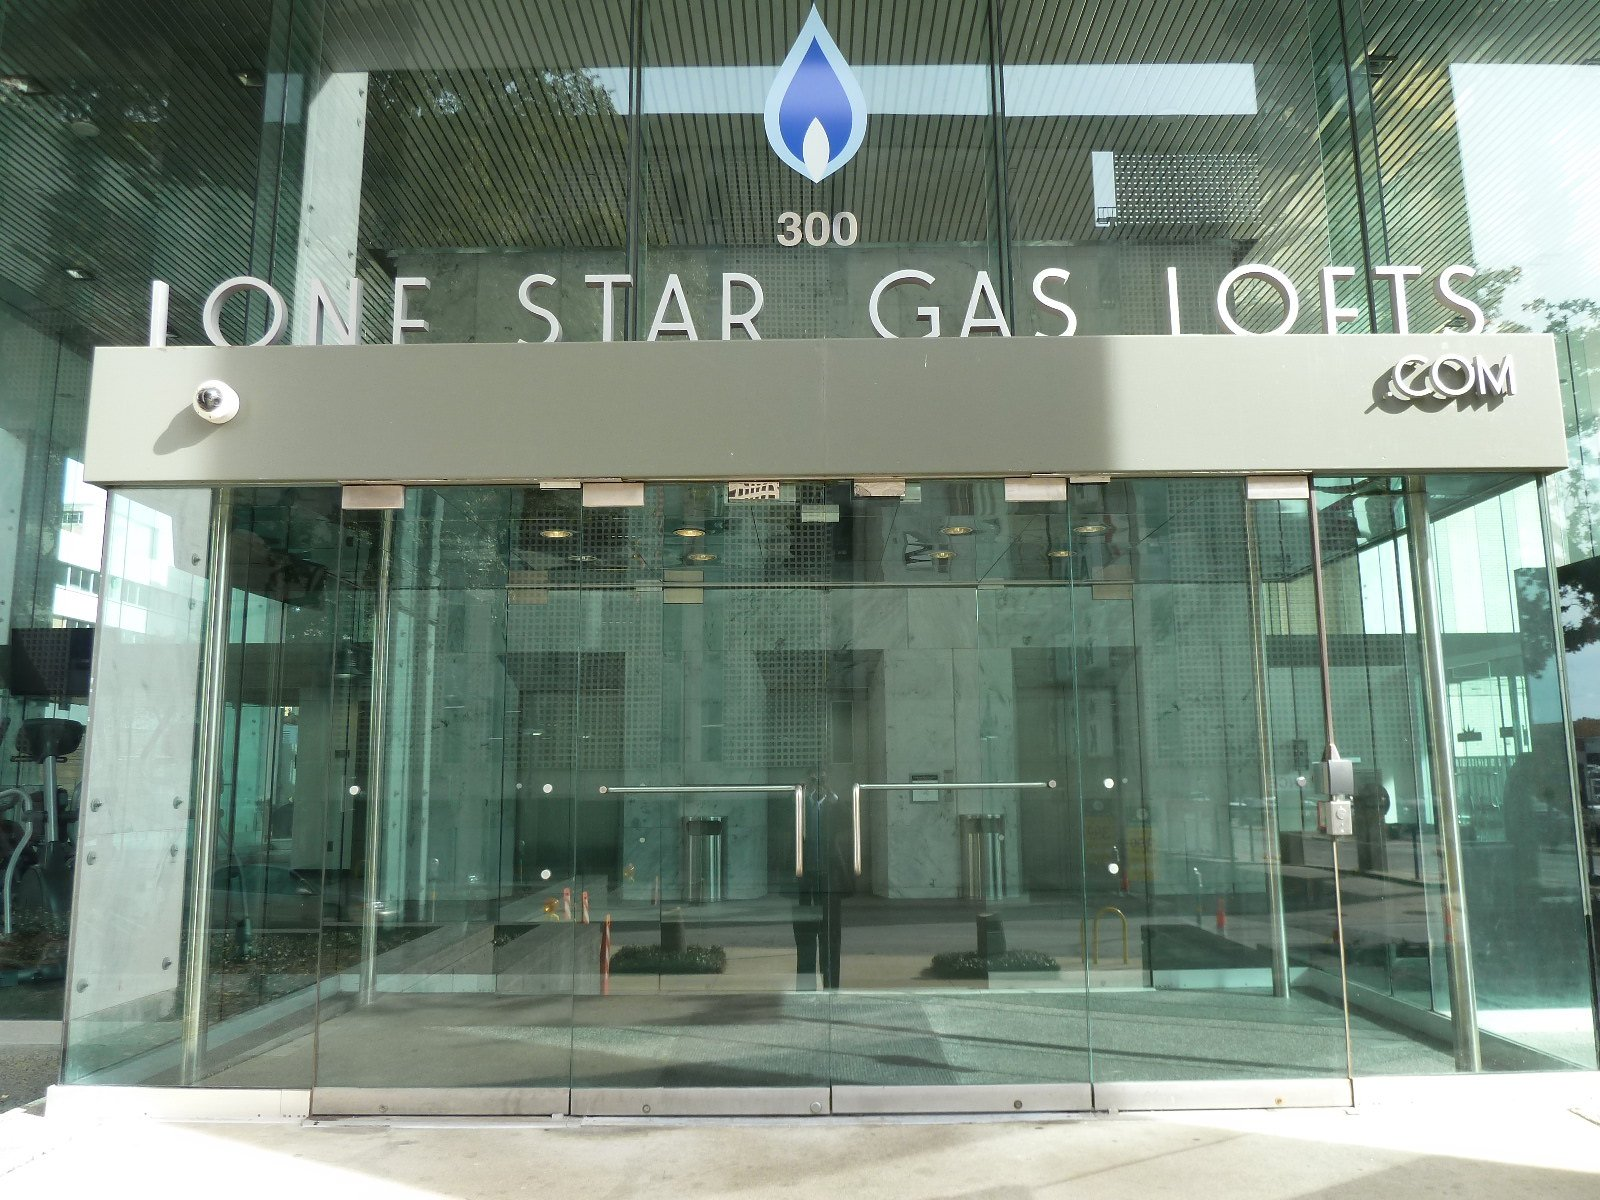 Lone Star Gas Lofts II